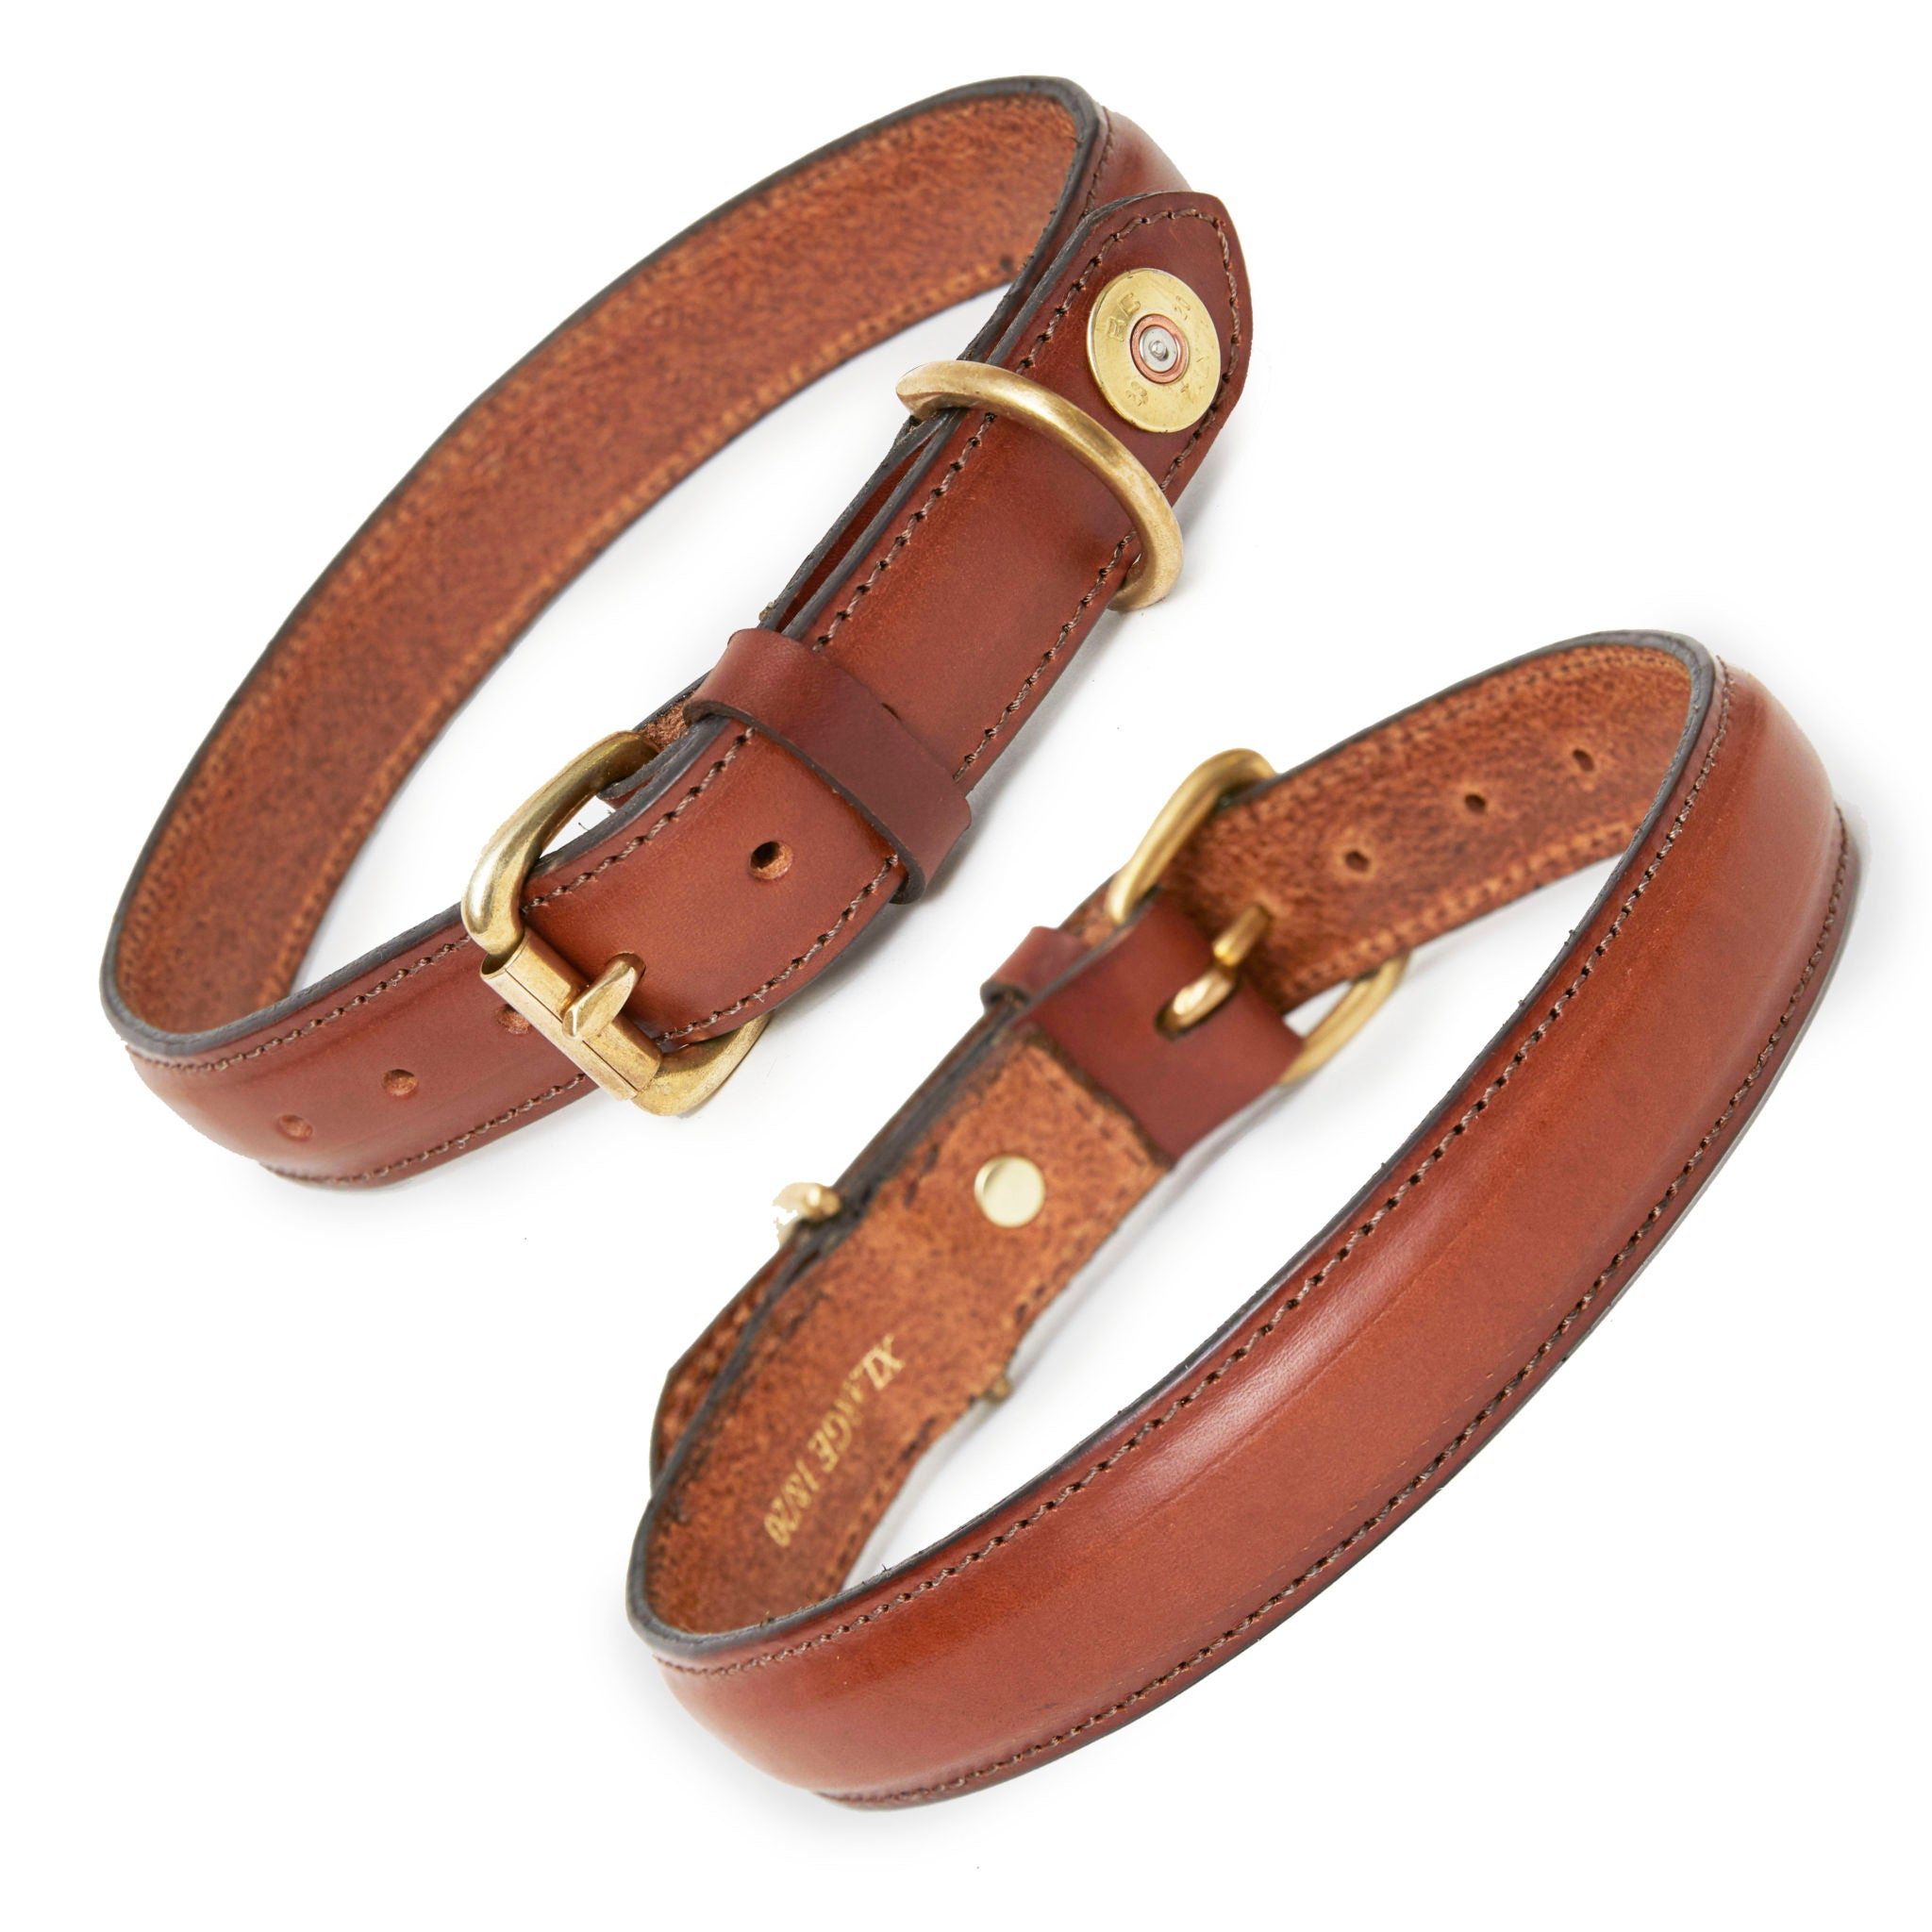 Hicks and Hides Laverton Field Dog Collar in Cognac